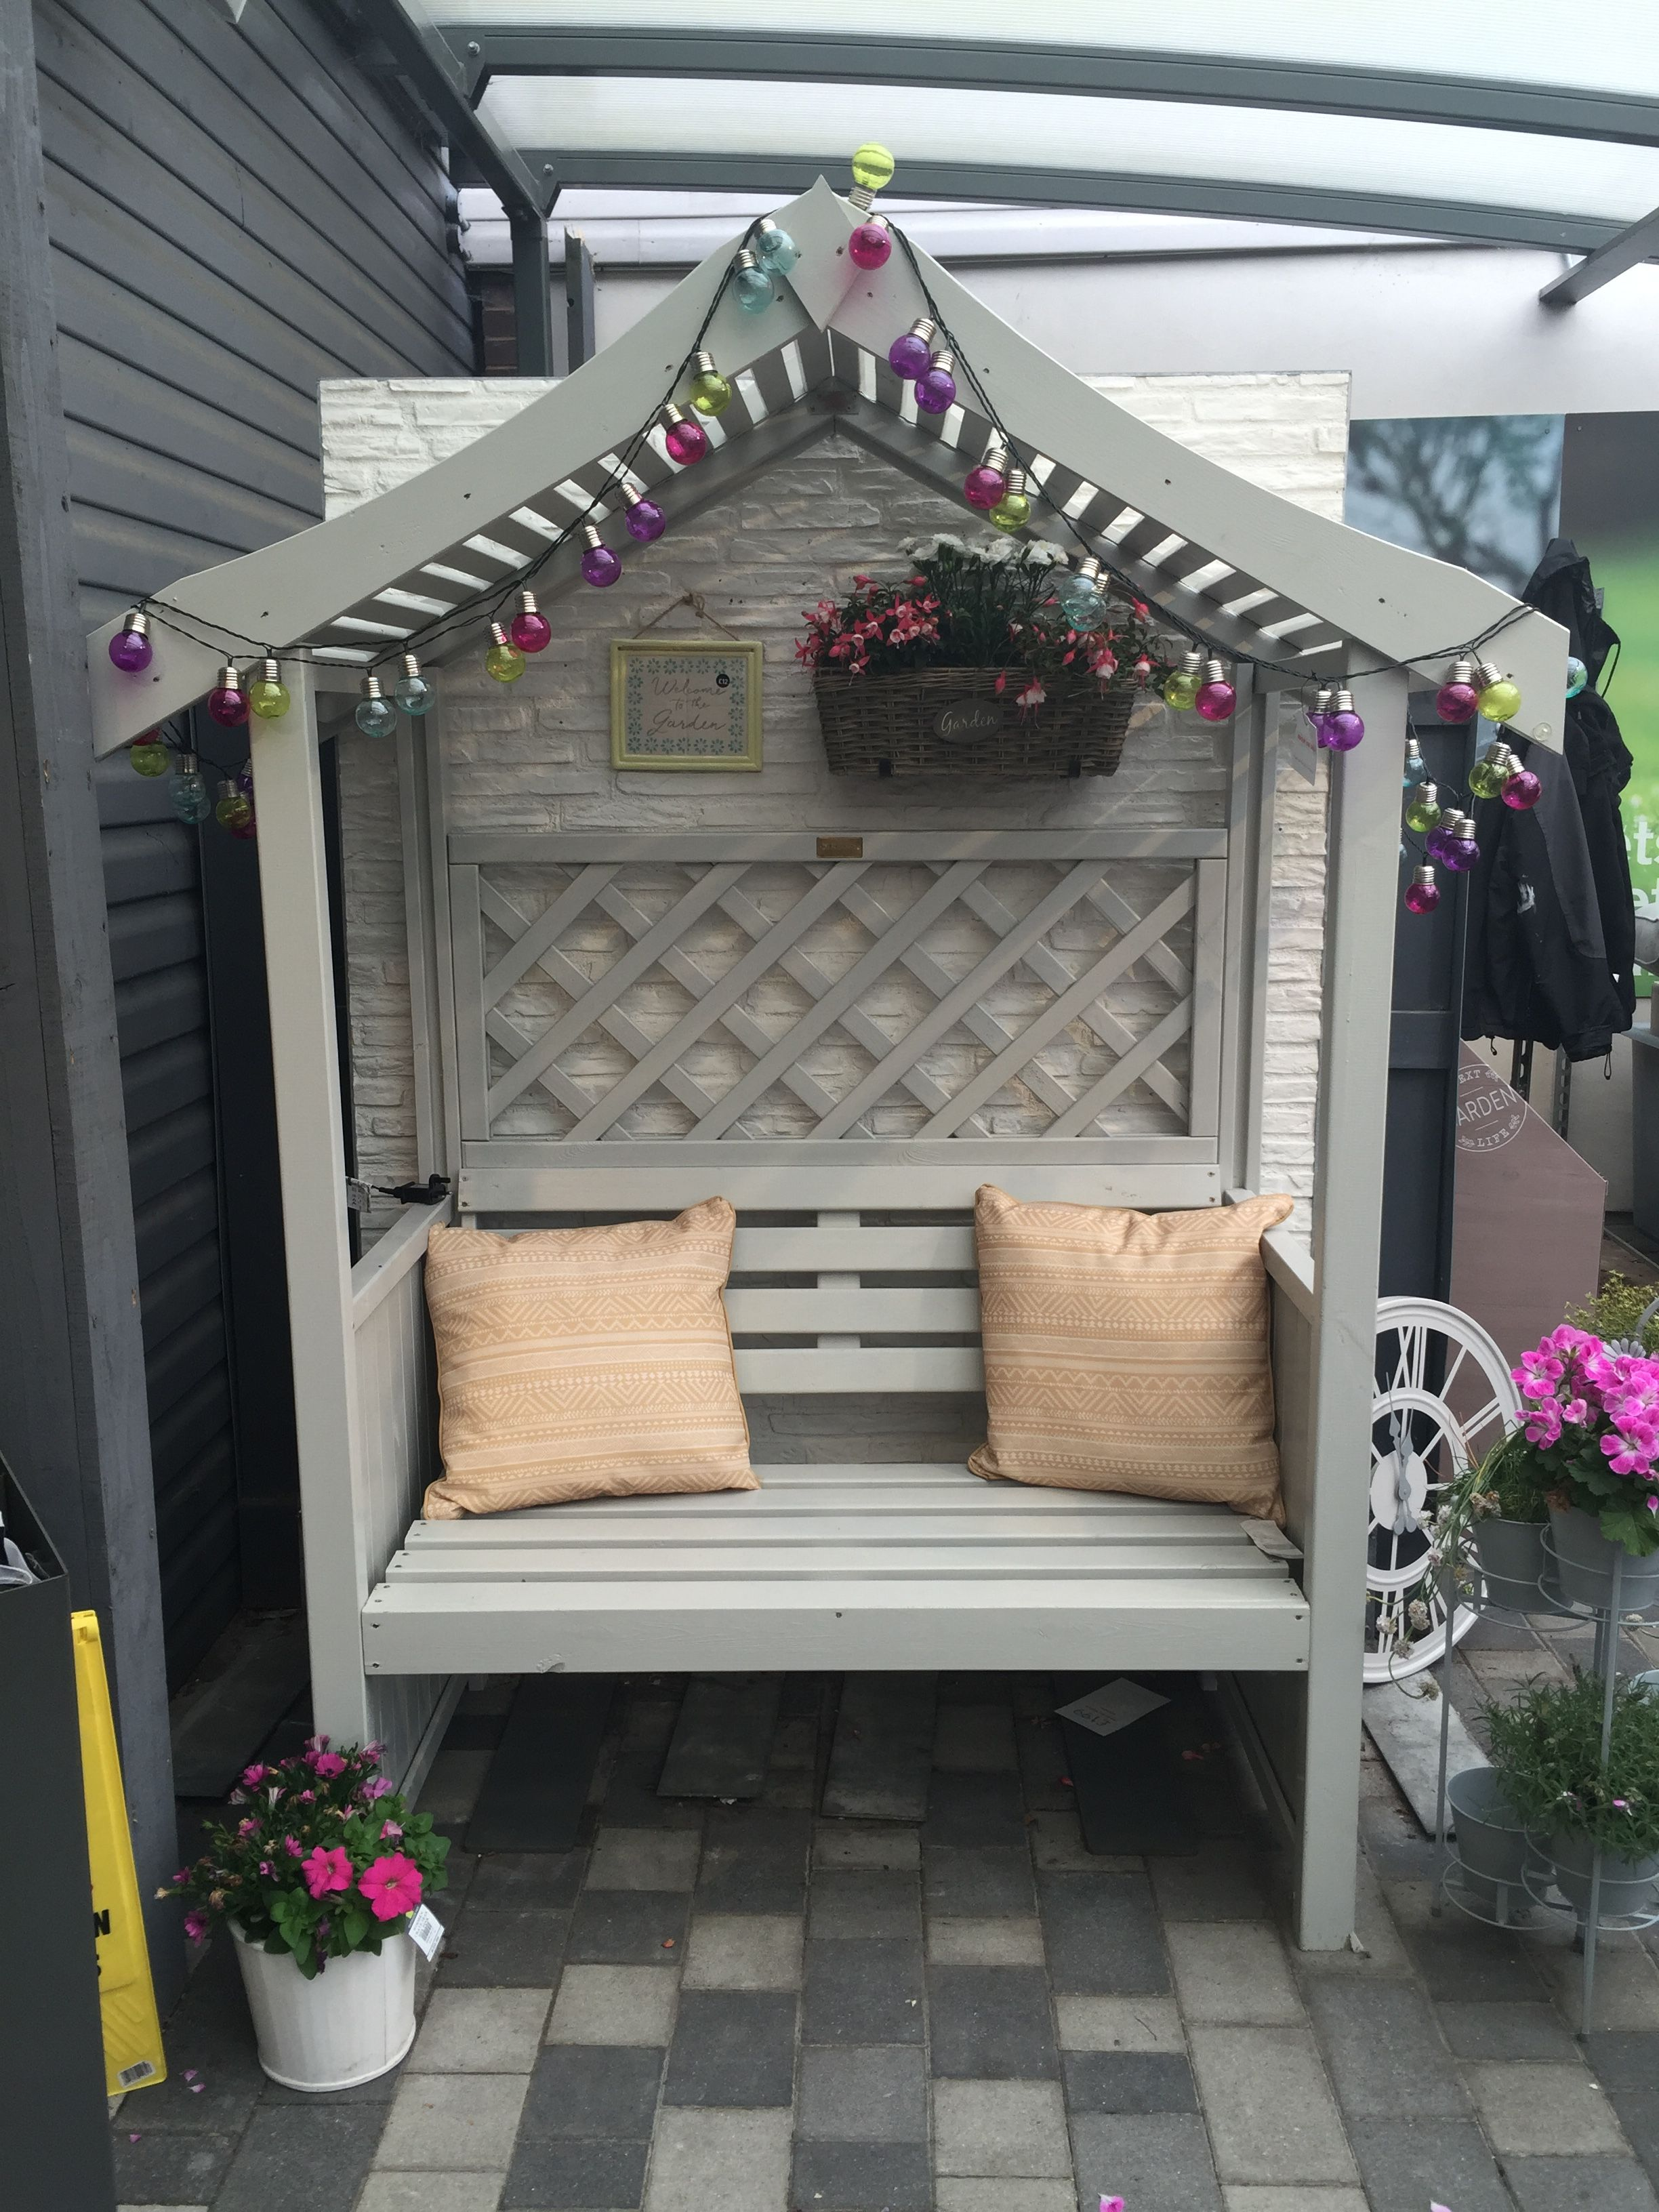 pin by steven lewis on new house 1930s inspiration on porch swing ideas inspiration id=71286